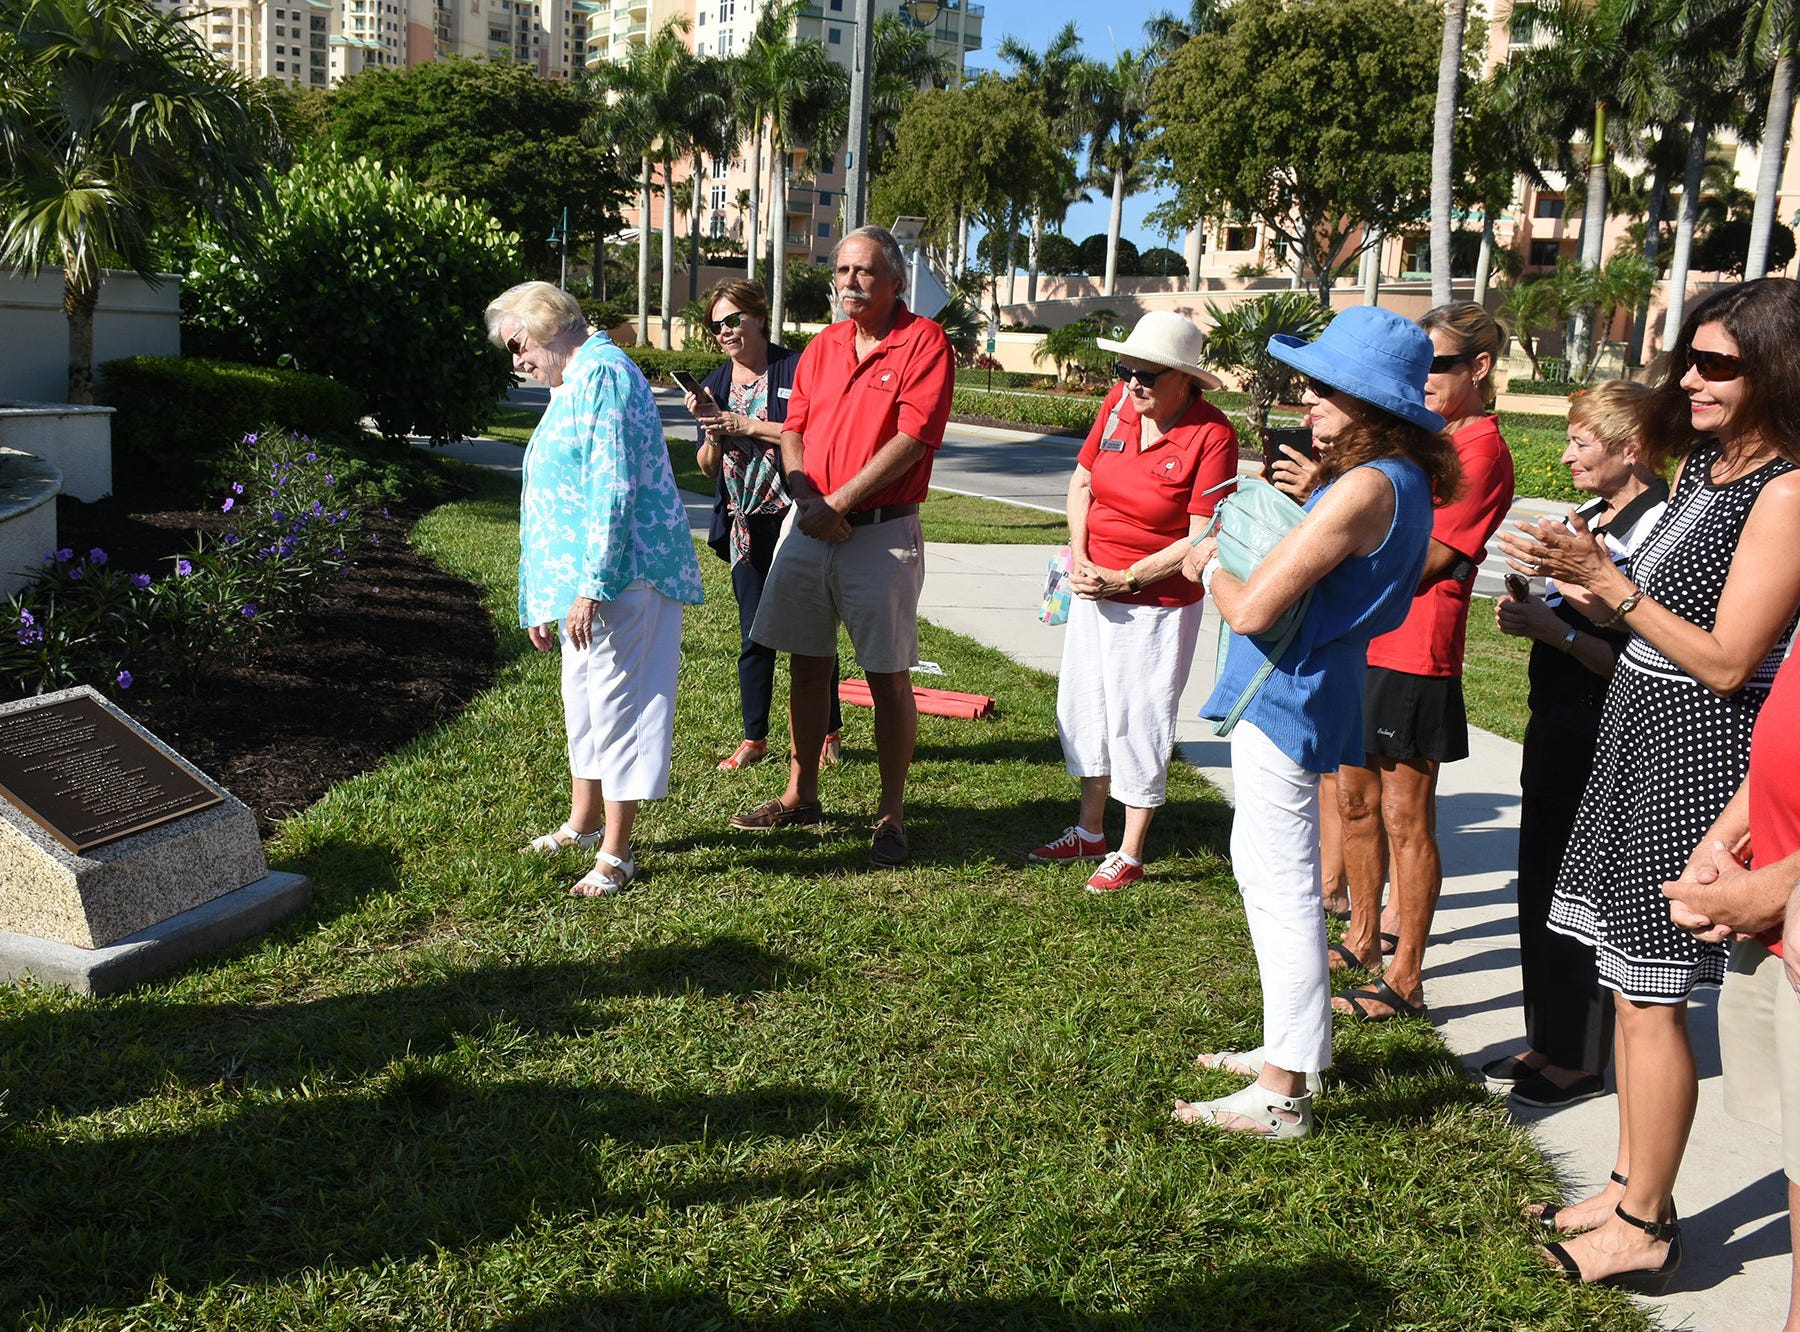 Mary Ann Sarazen, golf legend Gene Sarazen's daughter, views the plaque. Friday morning, the Marco Island Foundation for the Arts unveiled a plaque with the names of donors who have contributed to the purchase of the Double Eagle sculpture at Sarazen Park on Marco.